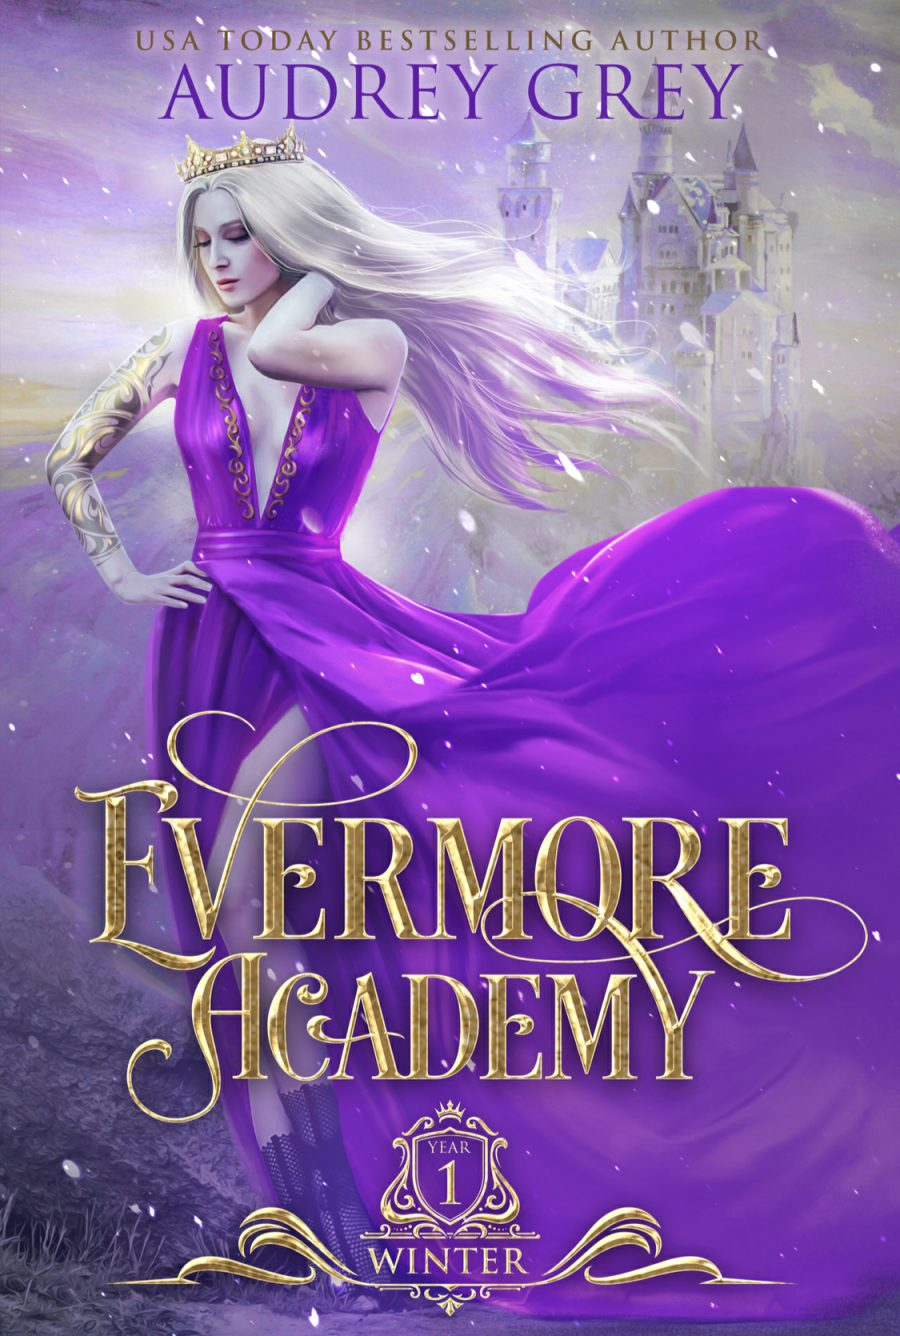 Winter: Year One (Evermore Academy - Book 1) by Audrey Grey - A Book Review #BookReview #Fantasy #UpperYA #4Stars #Fae #Academy #KindleUnlimited #KU